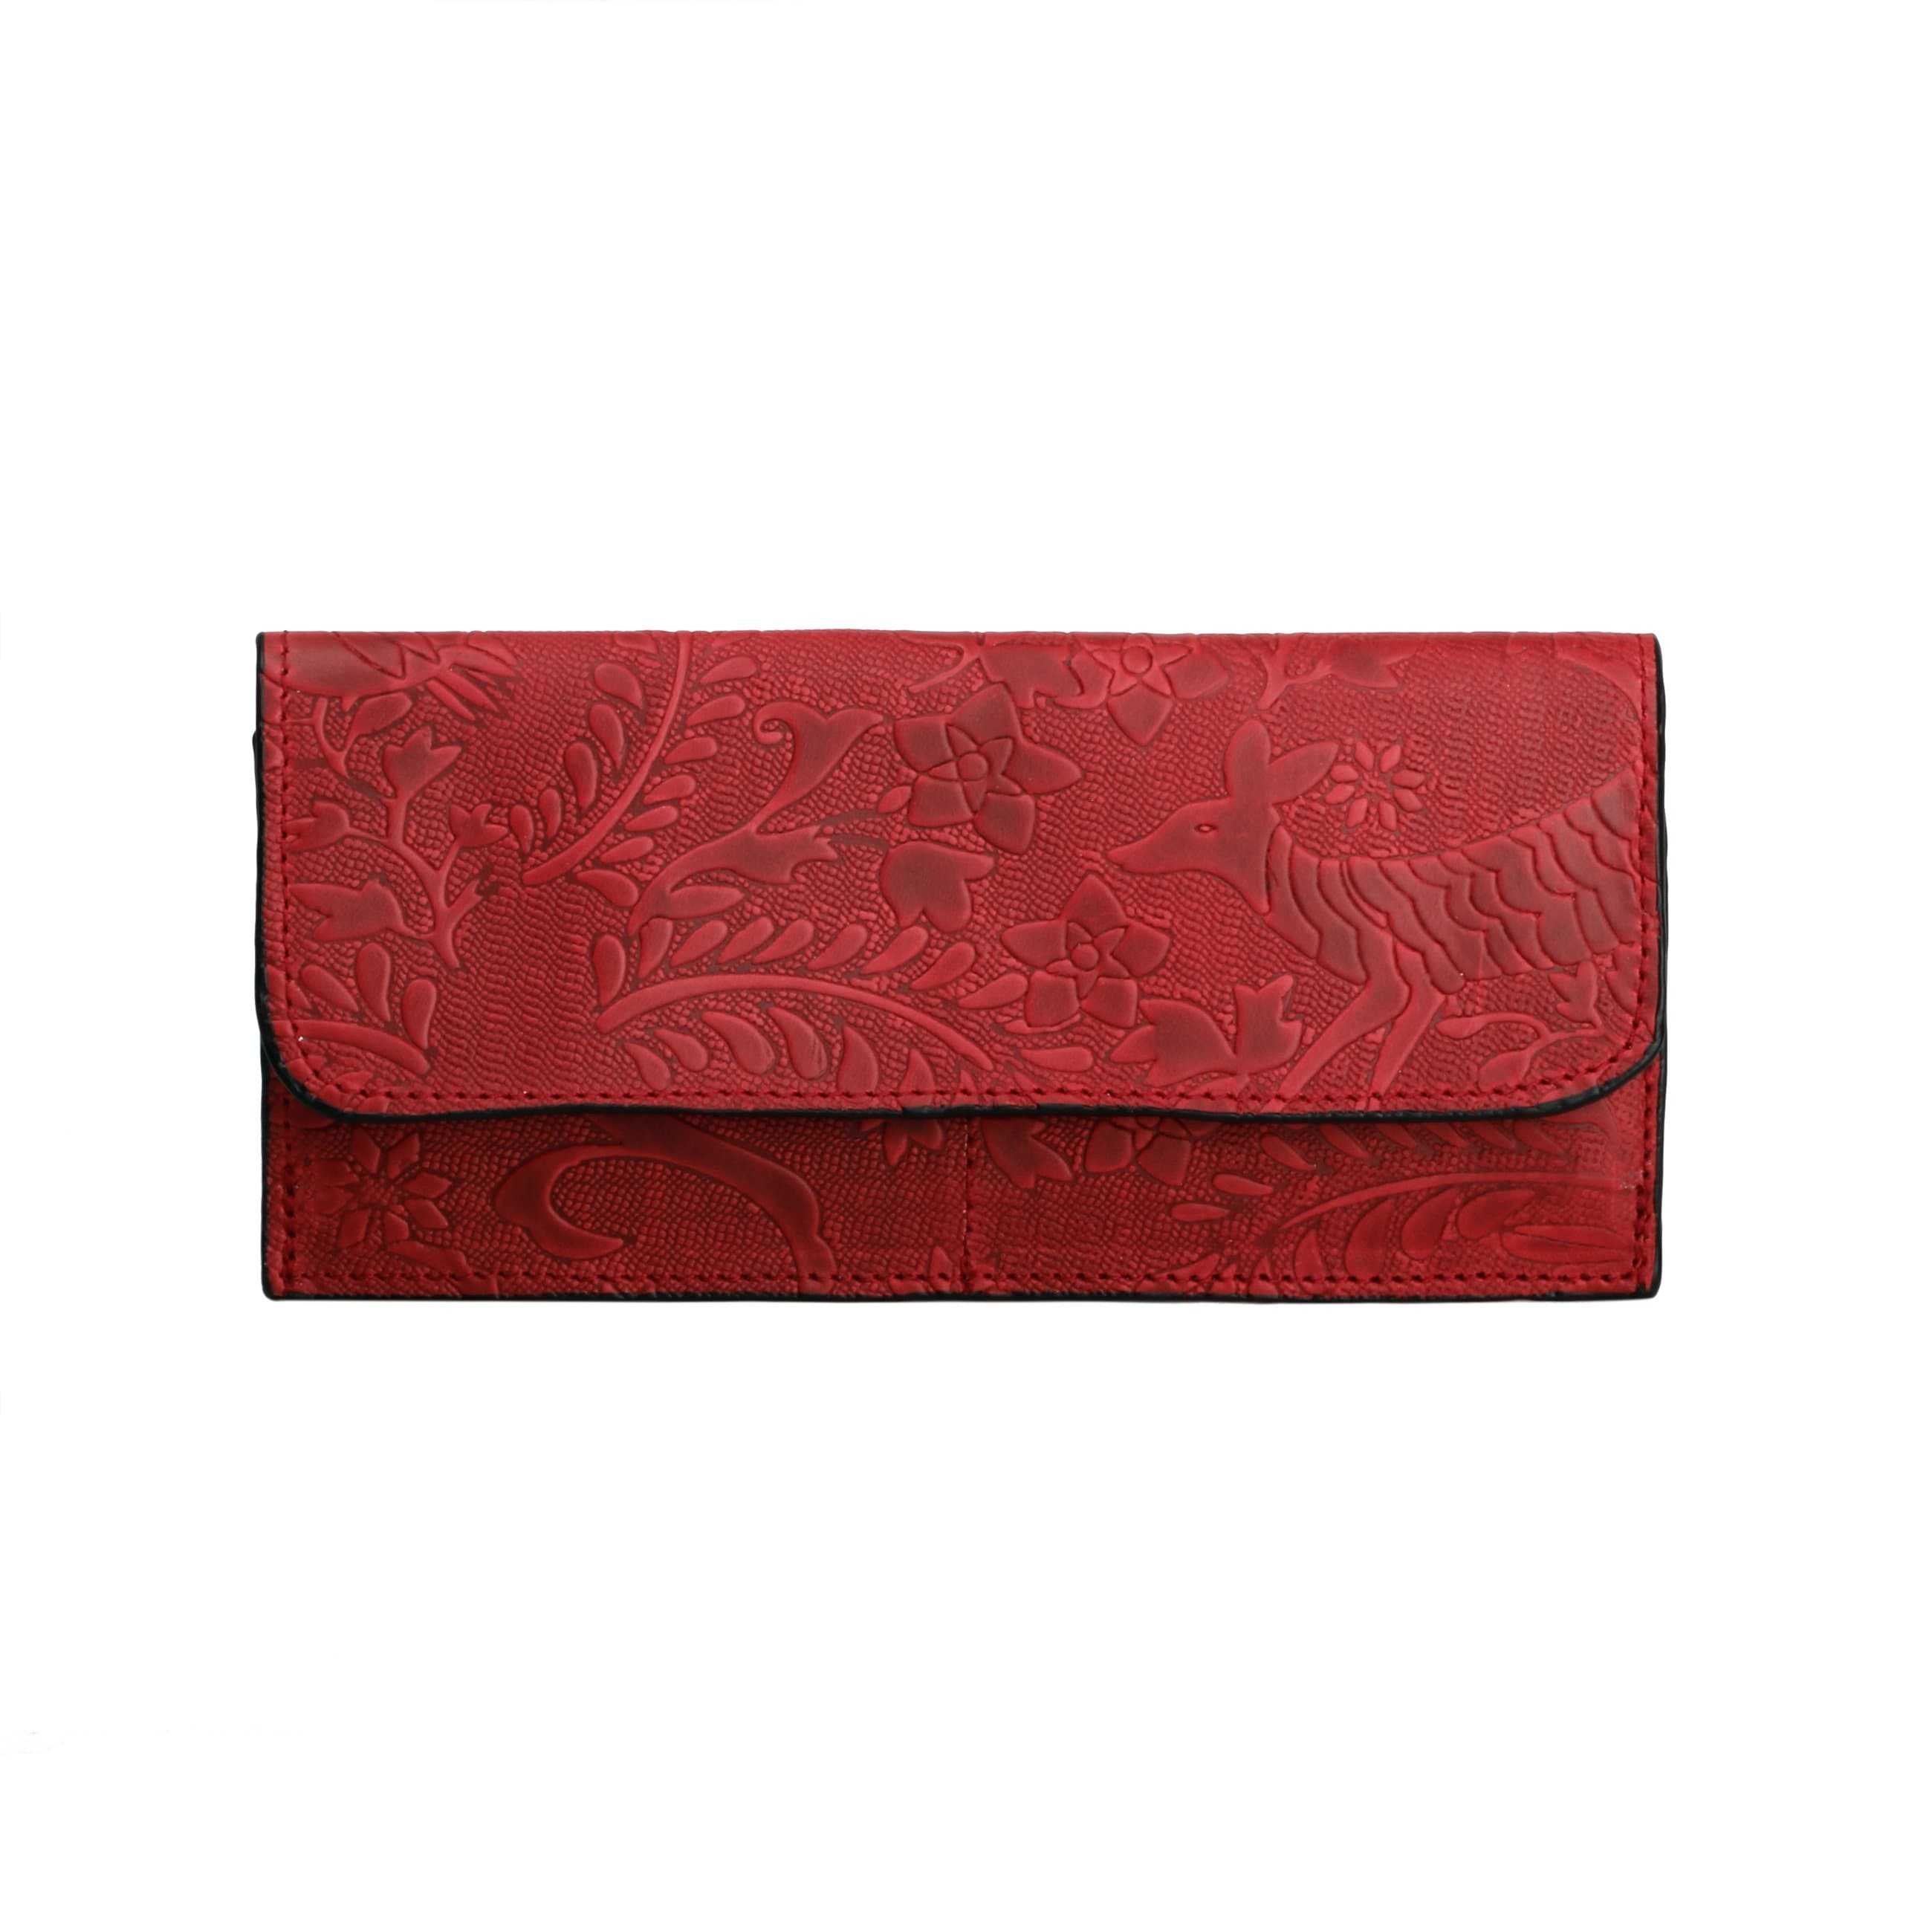 Otomí Merlot Pink Leather Wallet